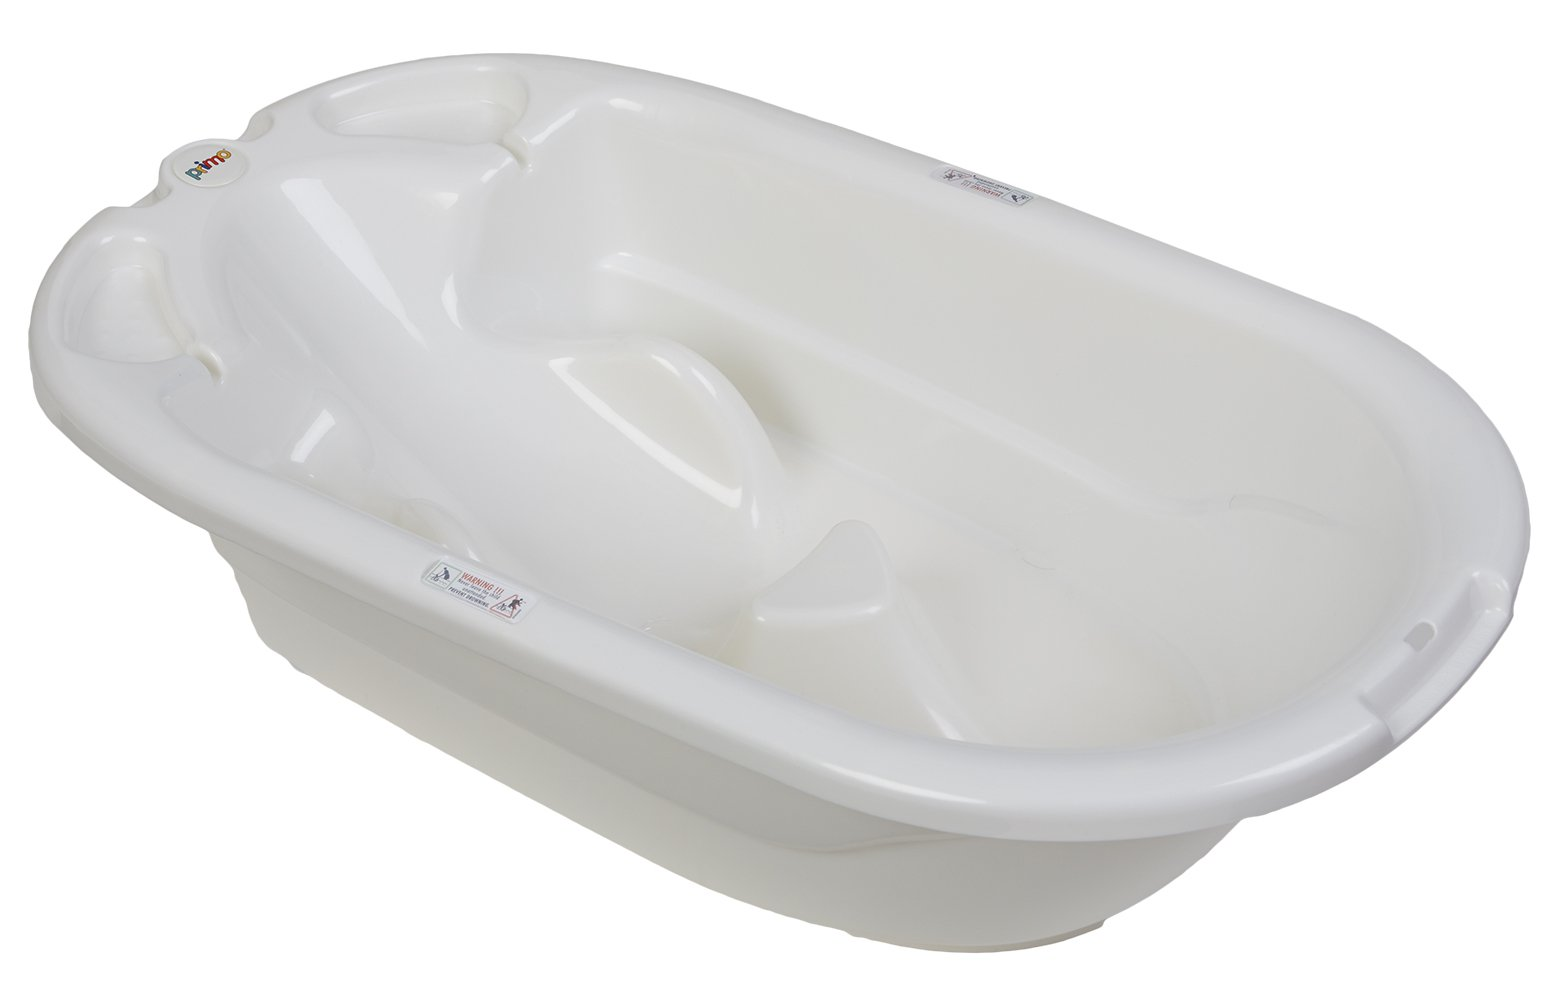 Amazon.com : PRIMO EuroBath, Pearl White : Baby Bathing Products : Baby